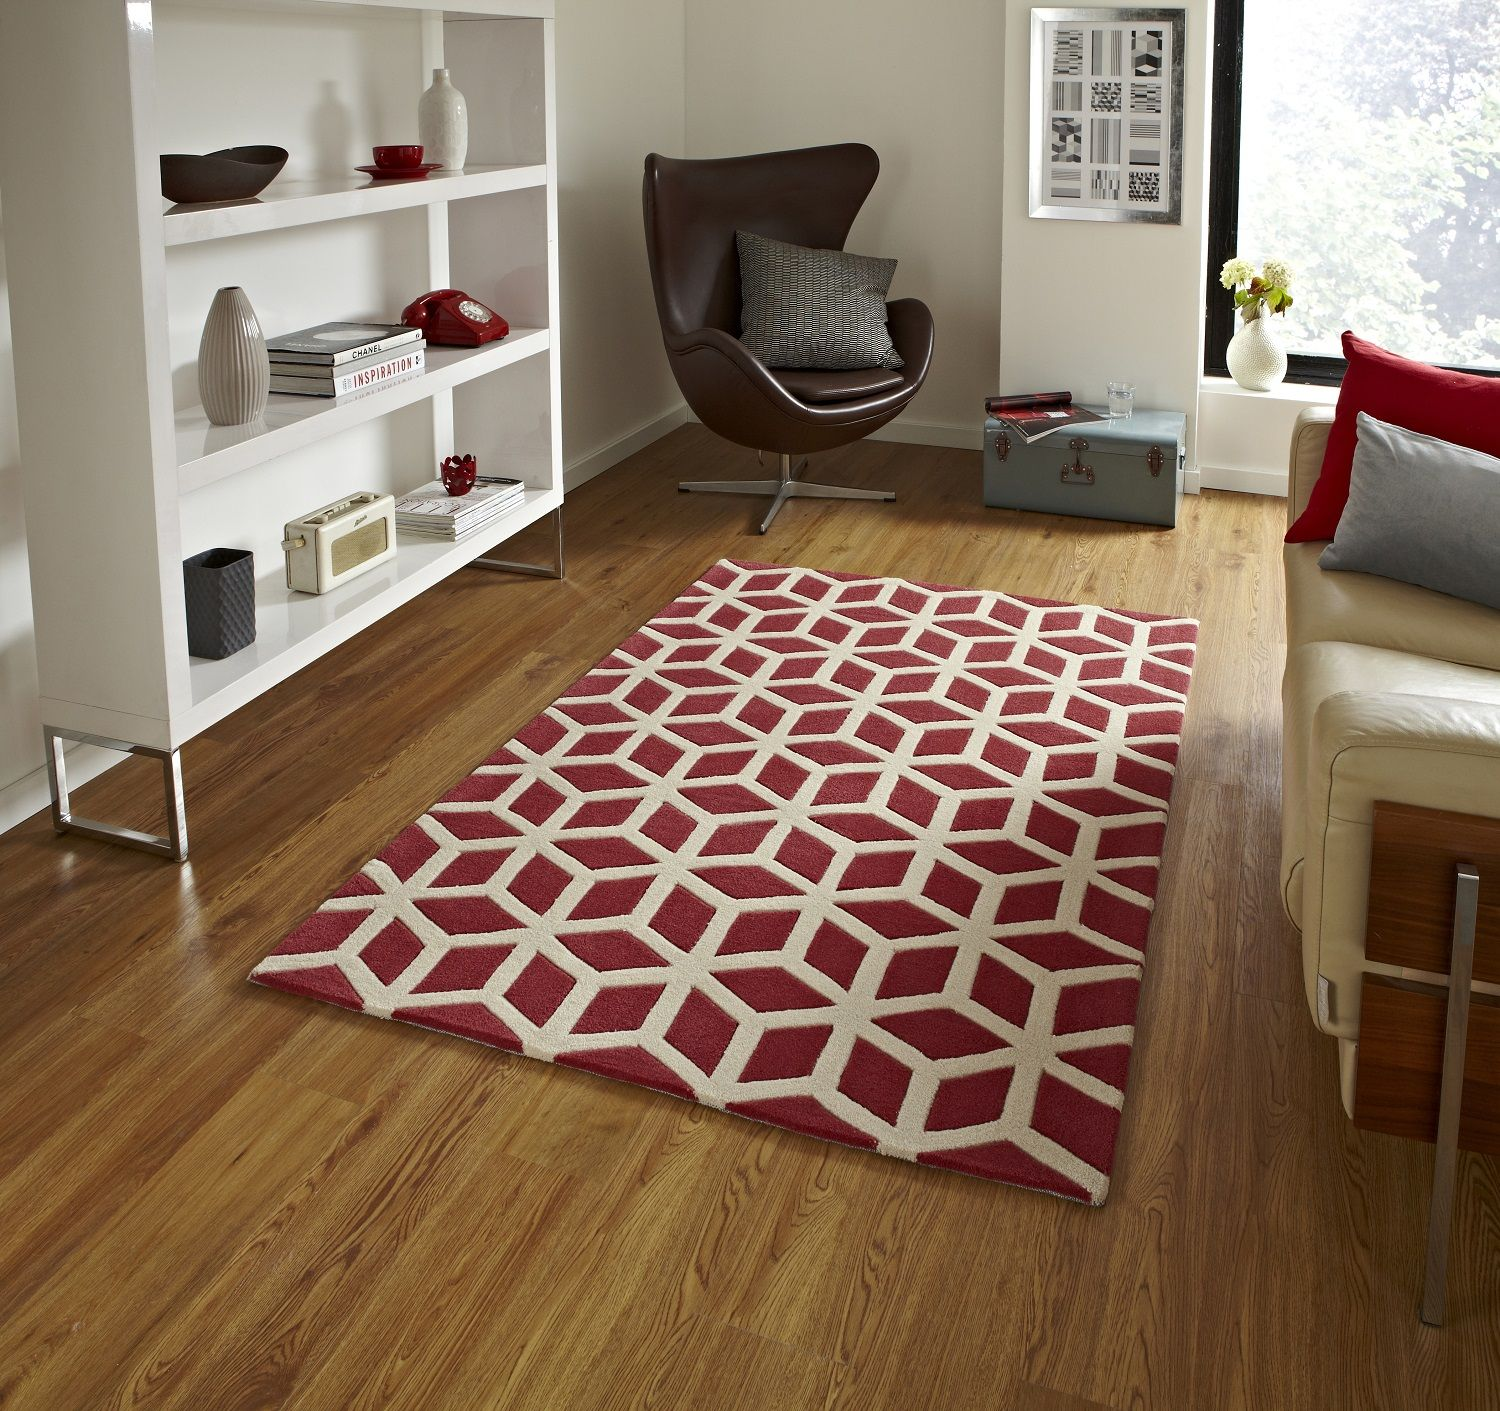 Handmade Optical Illusion Modern Floor Rug With Geometric Design Wool Pile Color Teal Beige